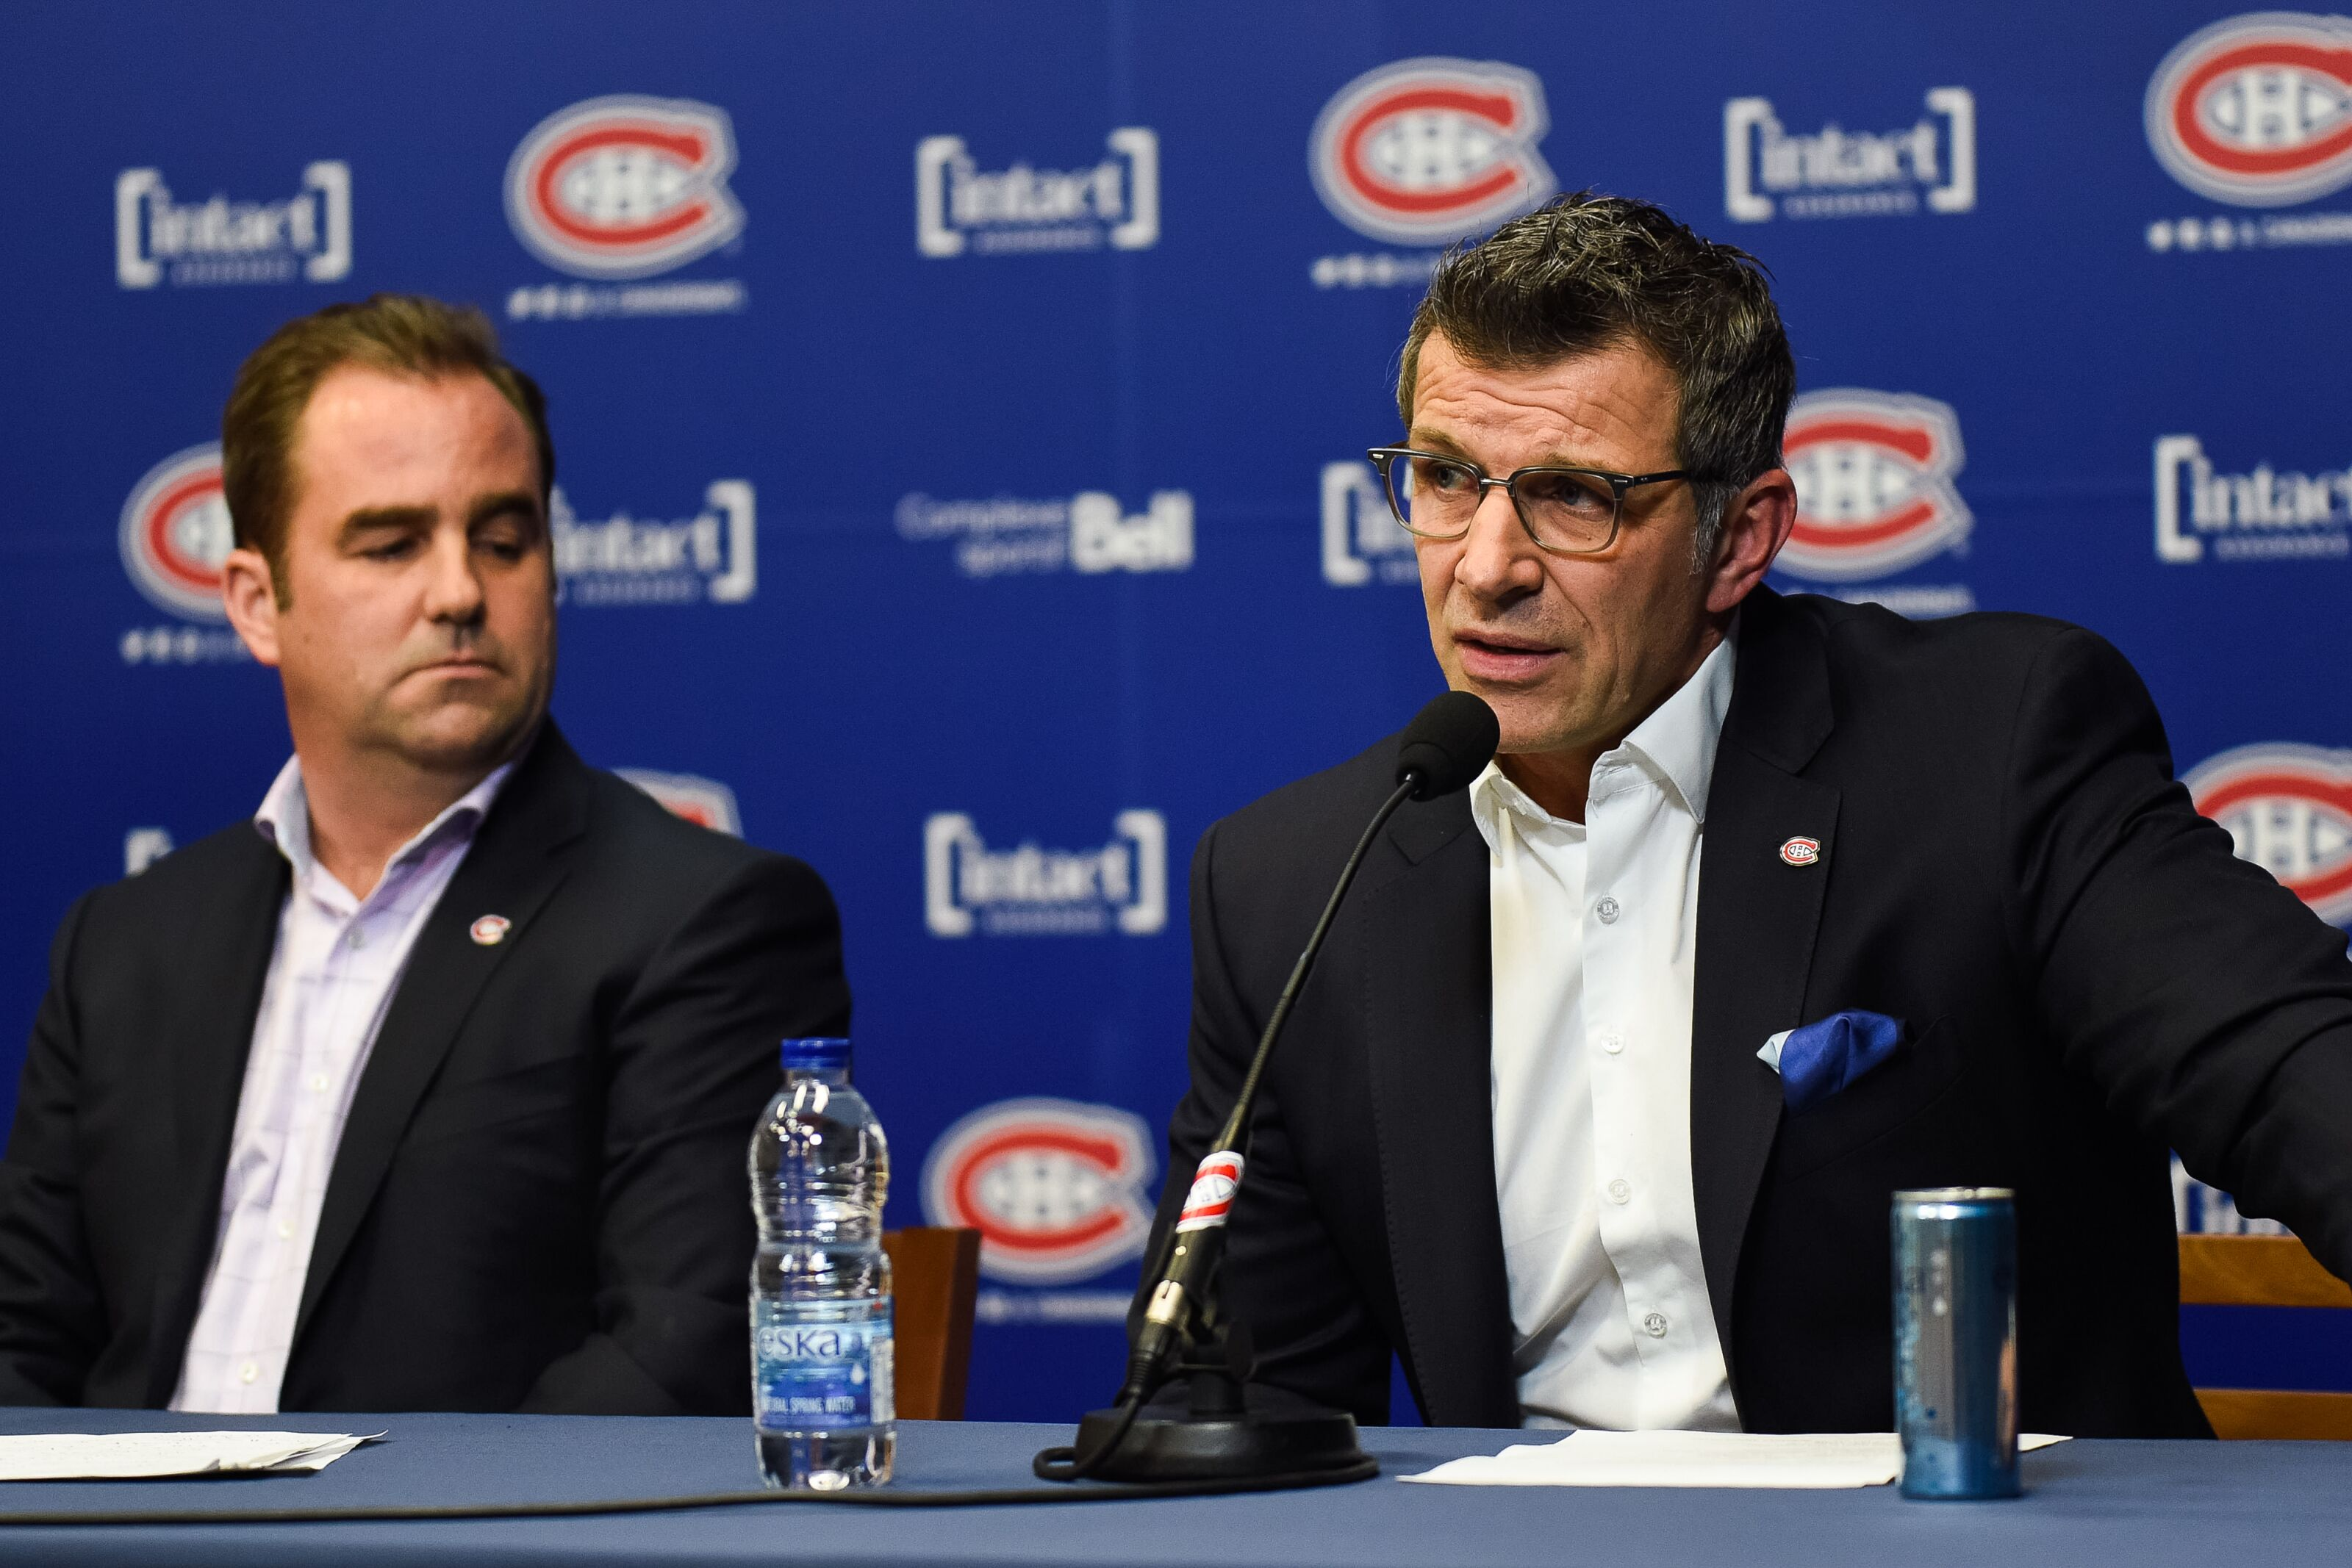 943922156-nhl-apr-9-montreal-canadiens-end-of-season-press-conference.jpg